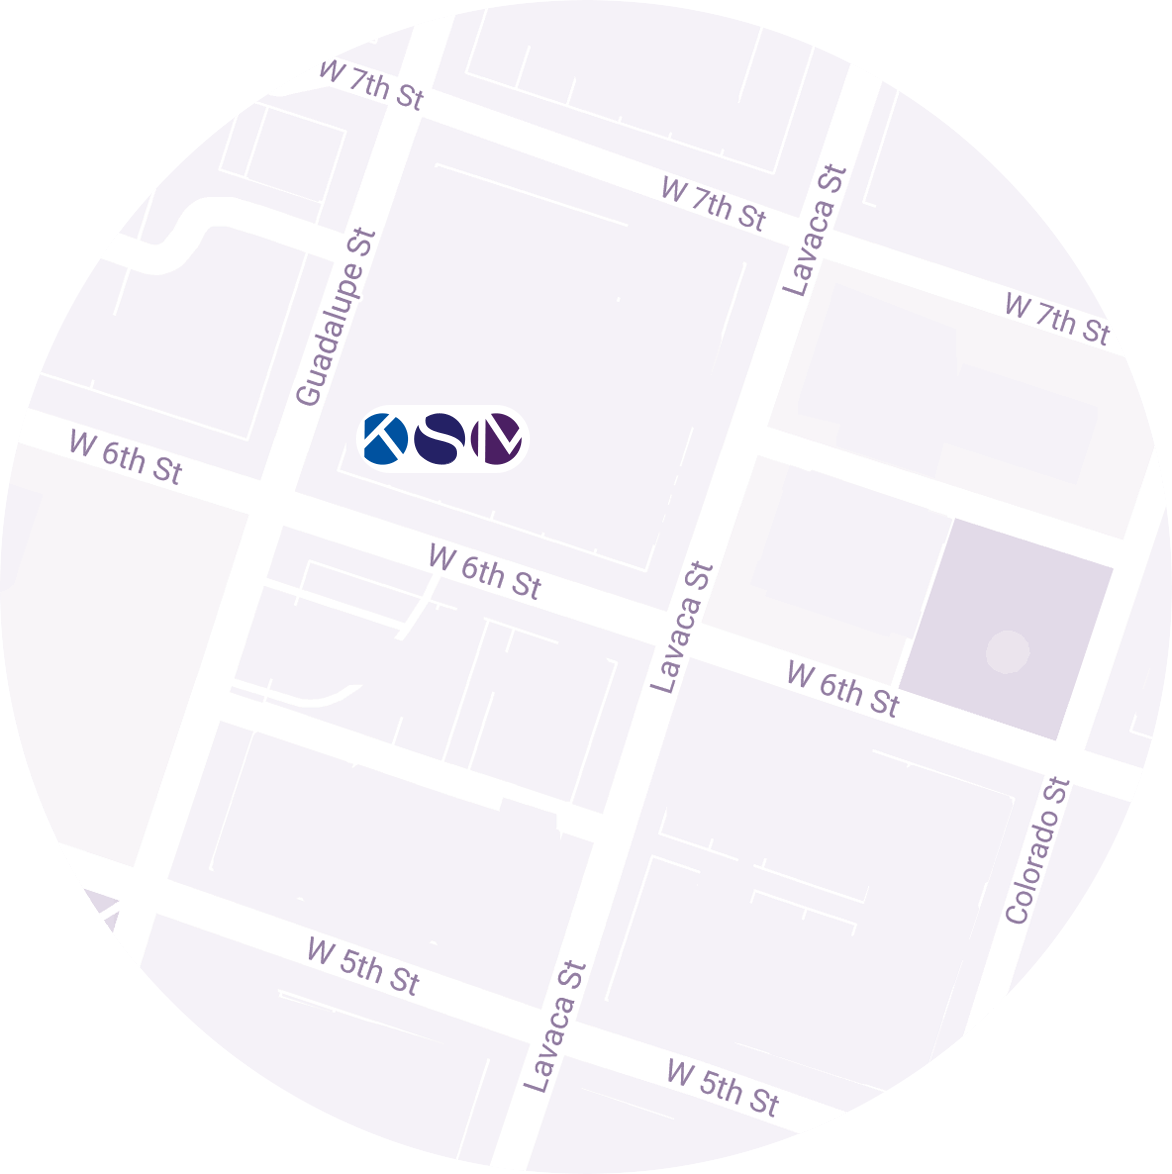 Map location of the KSM Austin office.